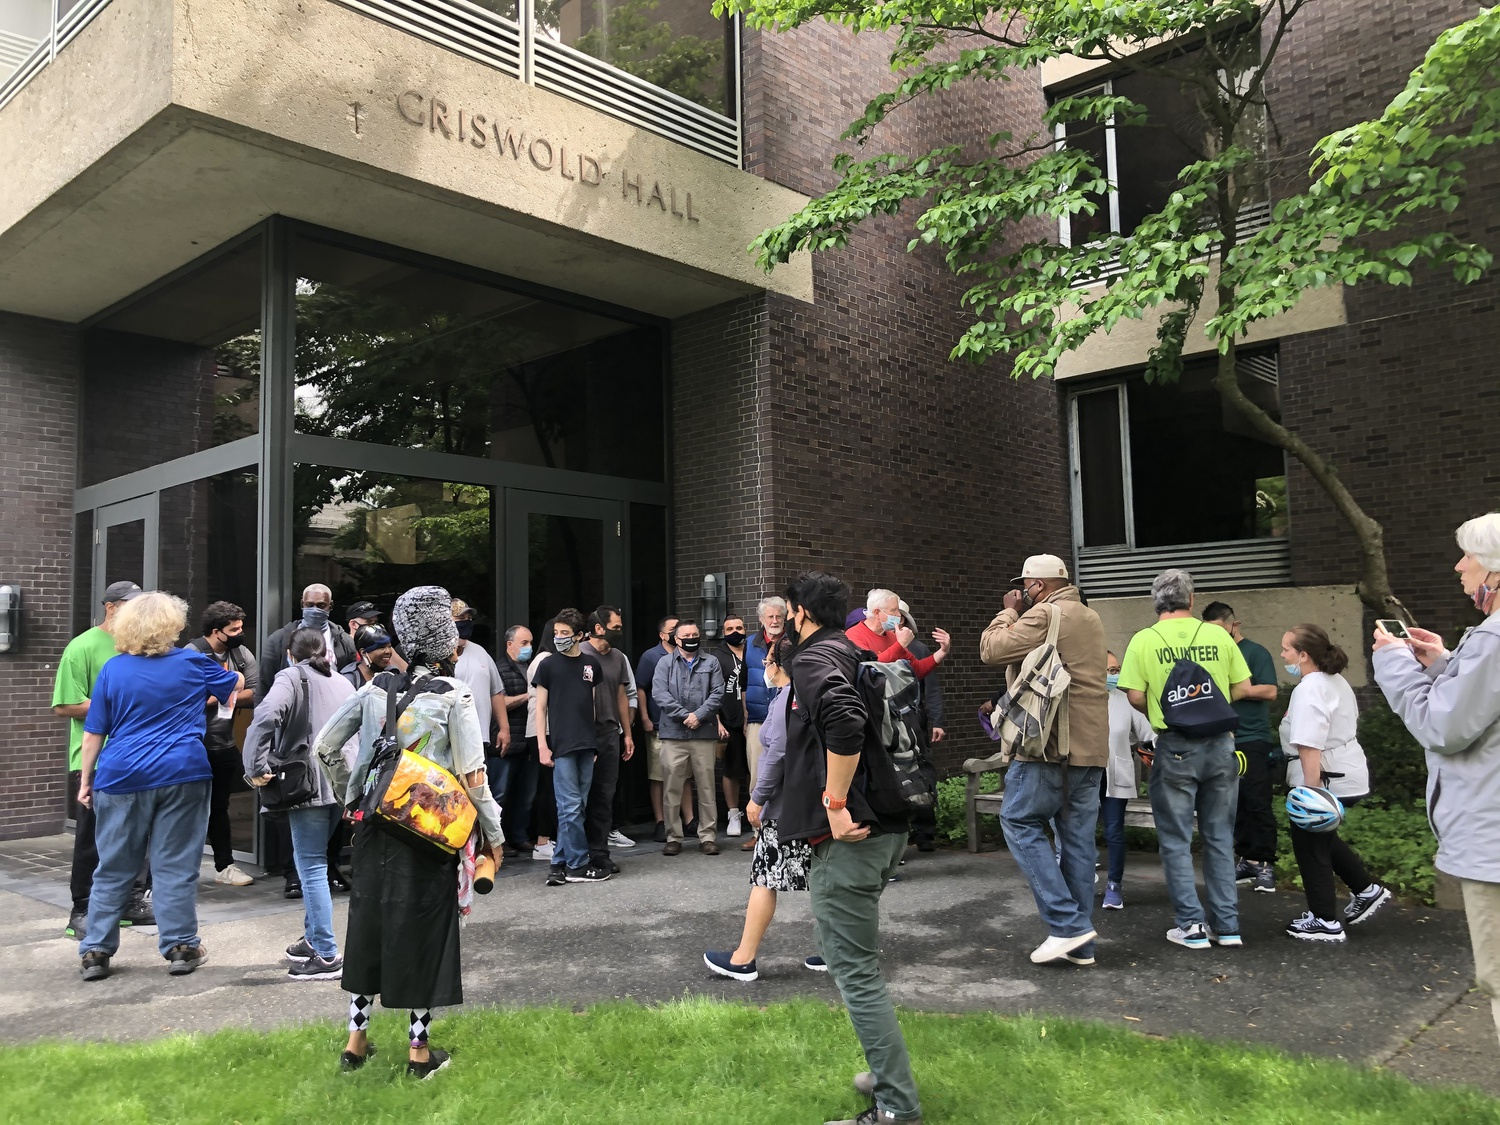 Approximately 30 Harvard dining workers and supporters rallied in front of the Law School Tuesday to protest potential layoffs as the school ends its contract with Restaurant Associates.